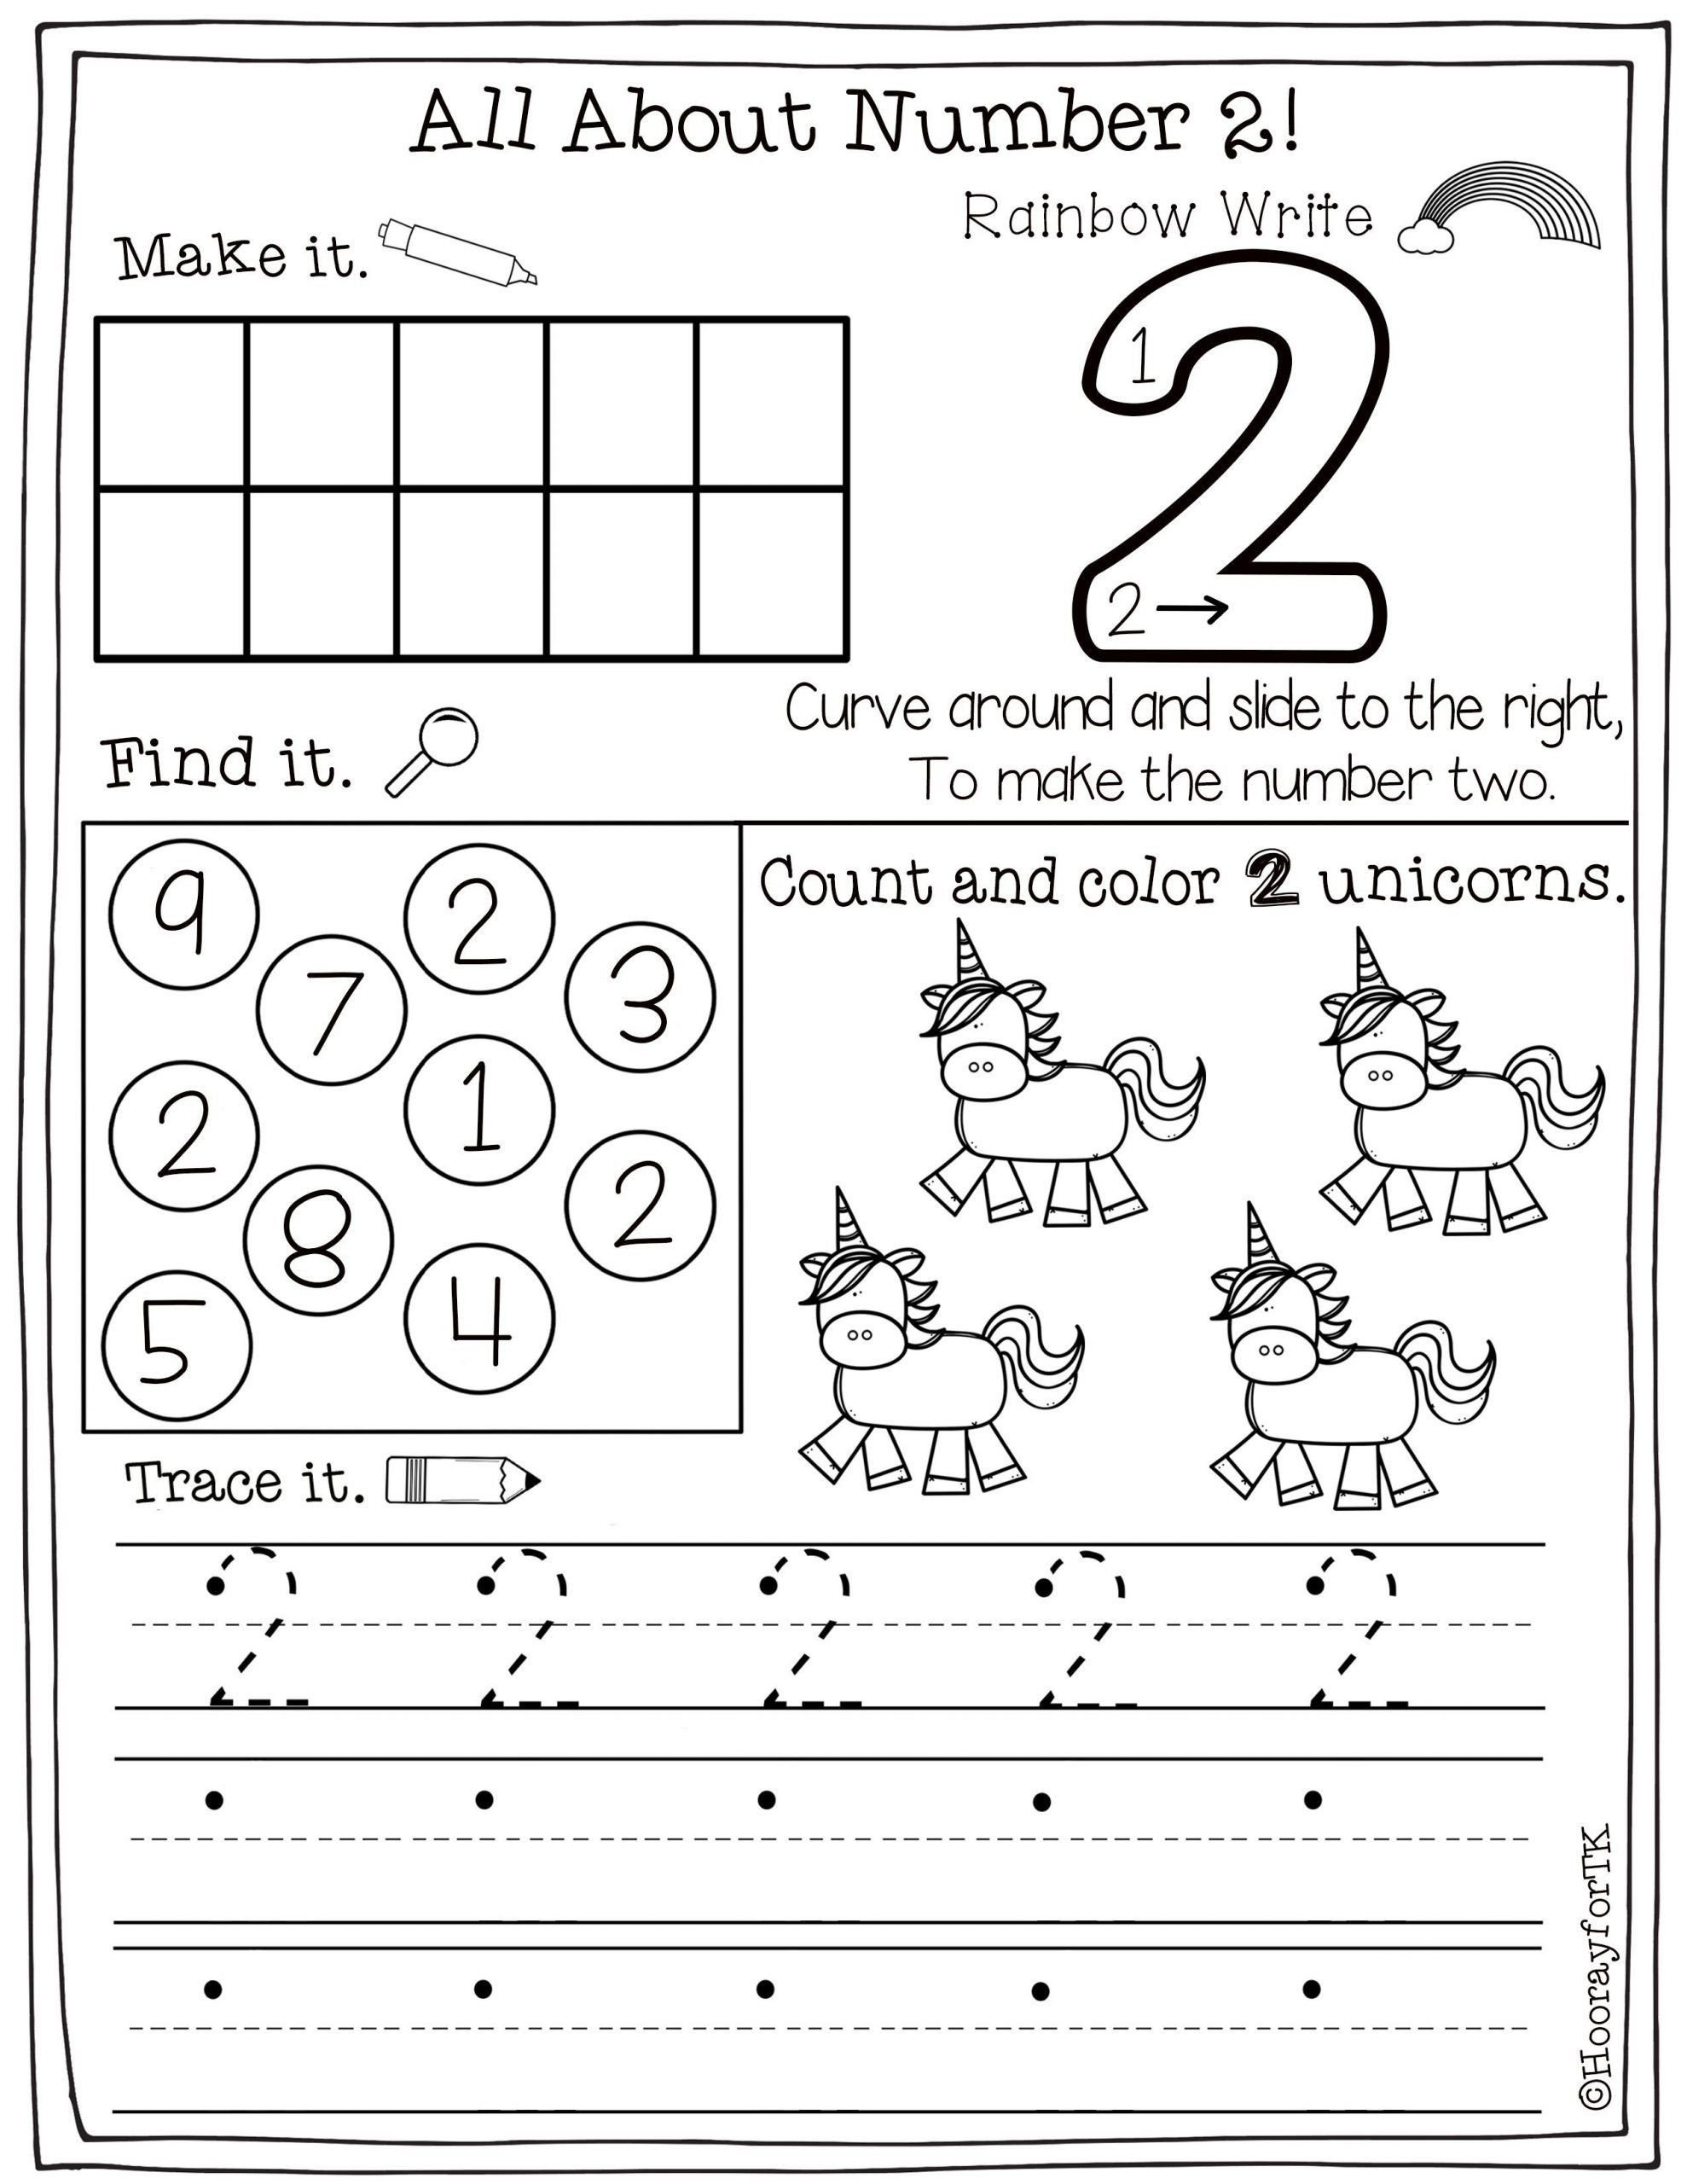 Number Recognition Worksheets 1 20 Number Recognition Worksheets 1 20 Number Worksheets 1 10 In